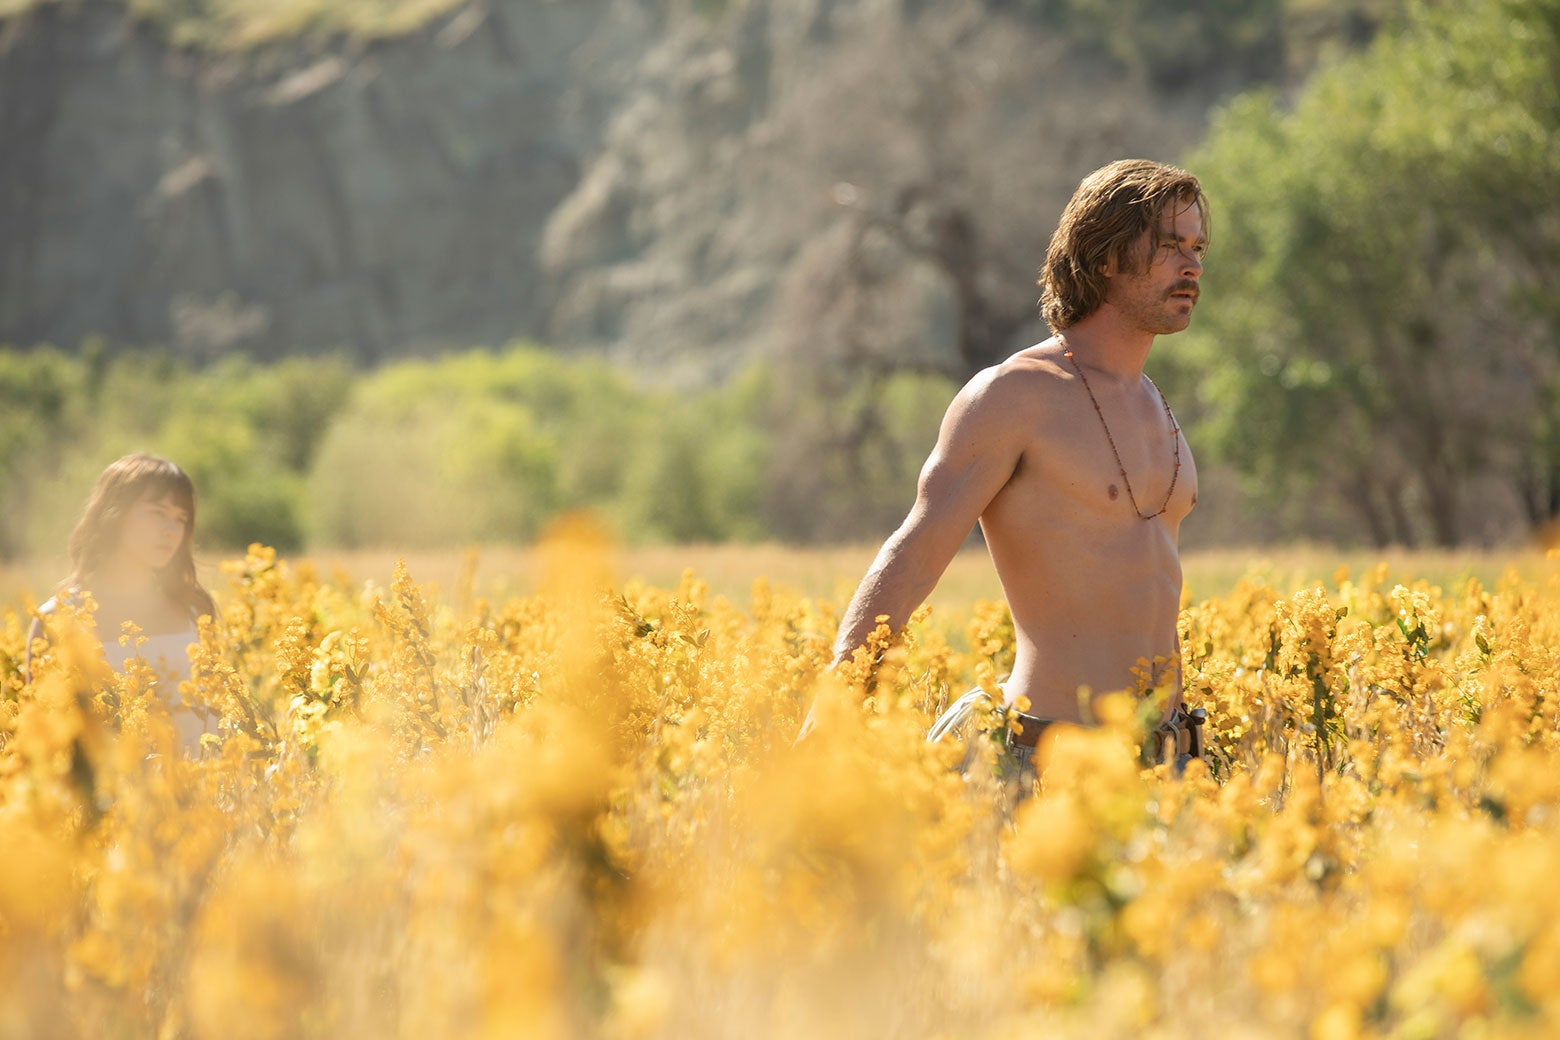 Cailee Spaeny and Chris Hemsworth (shirtless) walk through a field of wildflowers.